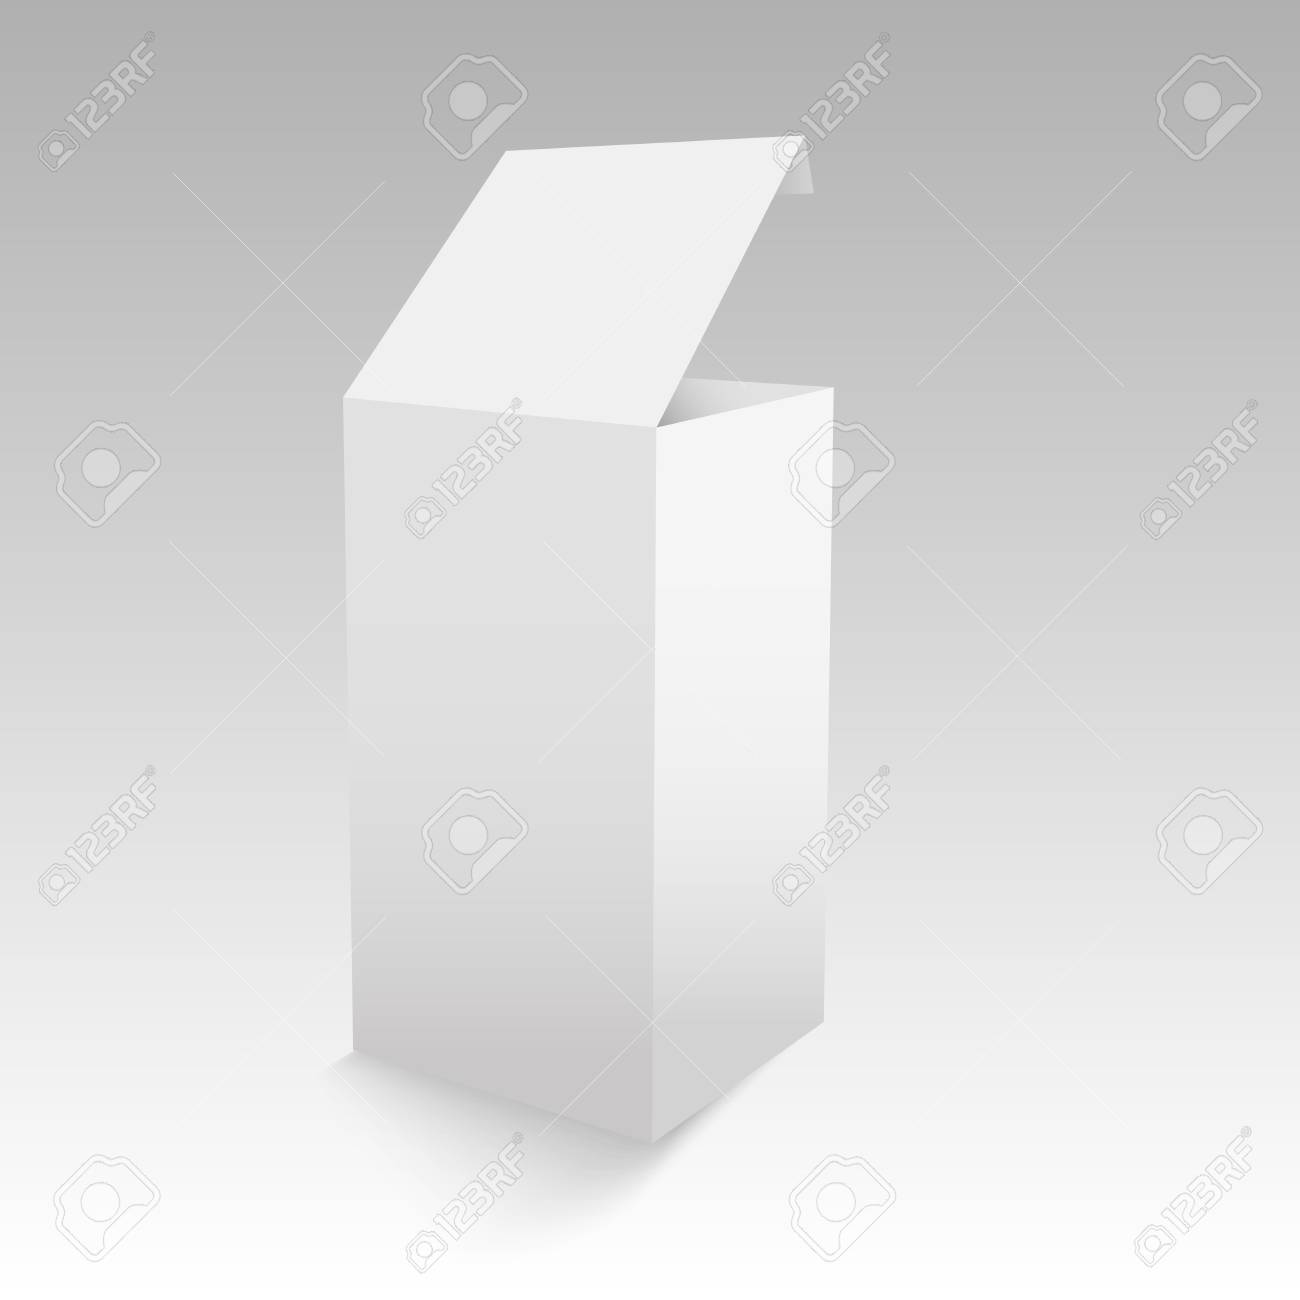 White Opened Cardboard Box Template. Royalty Free Cliparts, Vectors ...